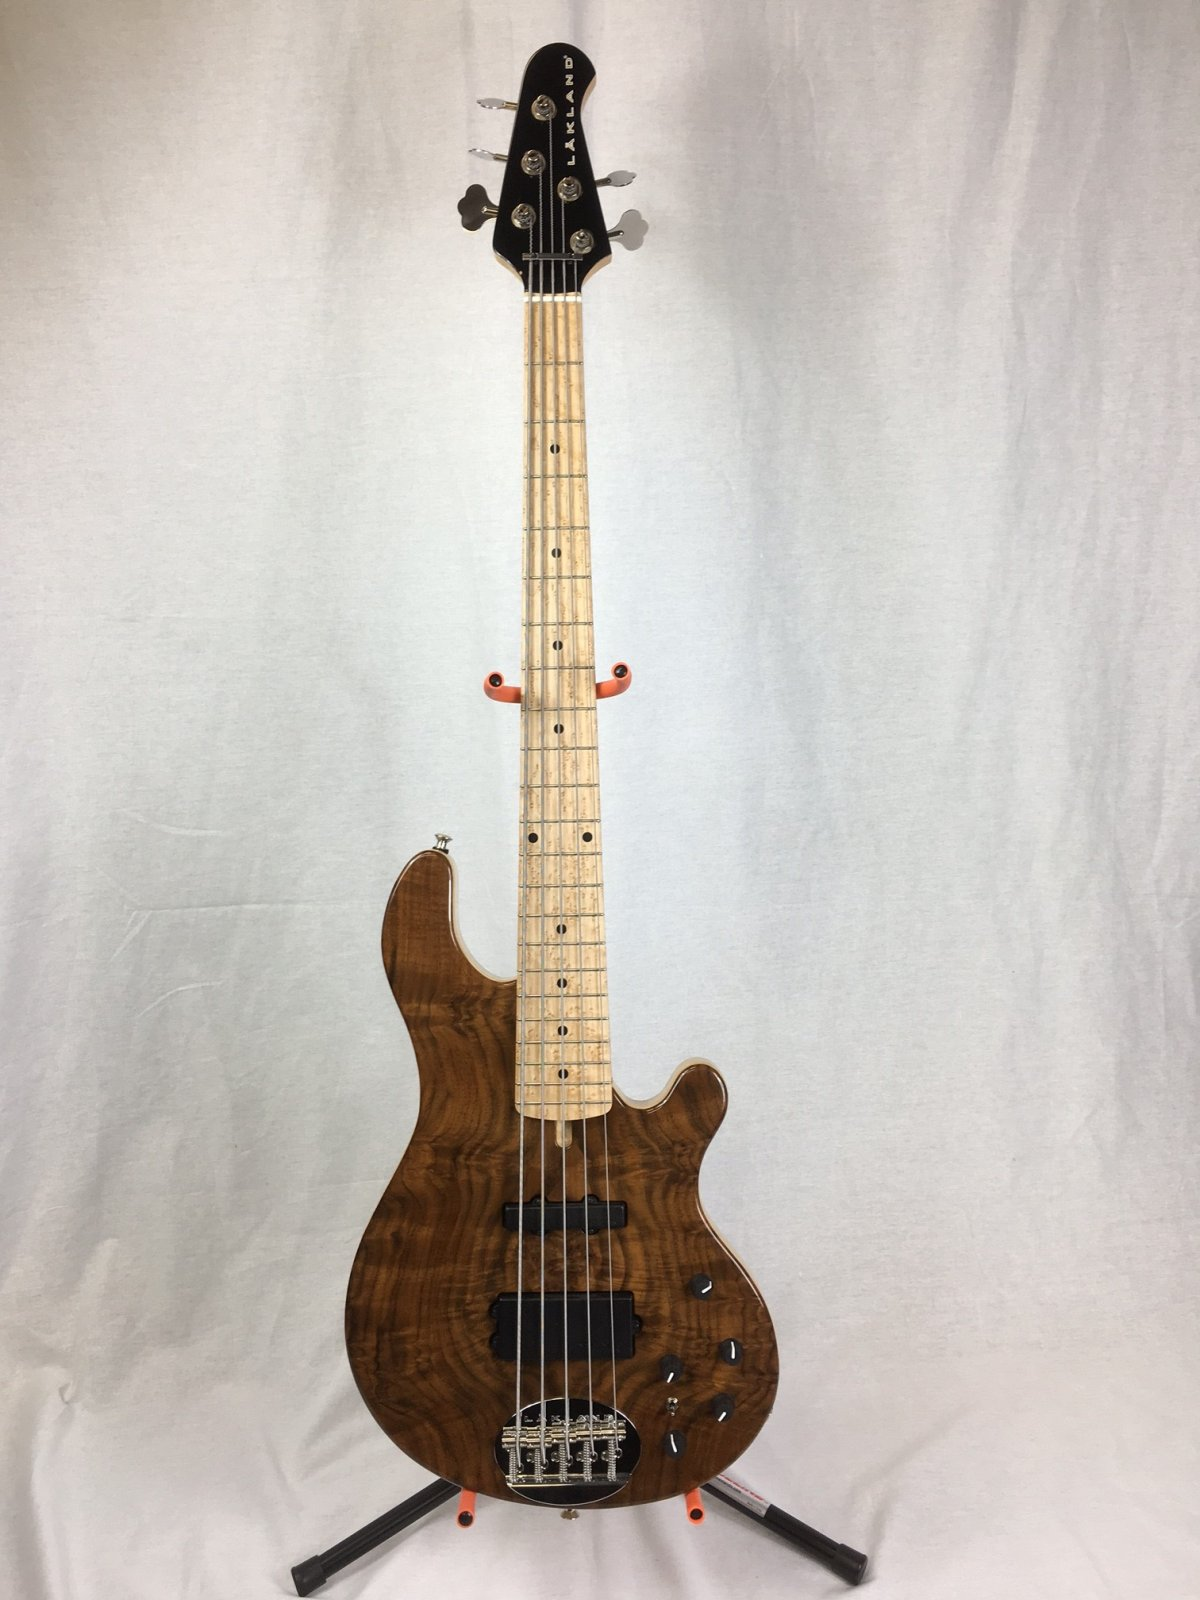 Lakland US 55-94 Deluxe B Stock - Exotic Top - Burl Walnut with Birdseye Maple fingerboard